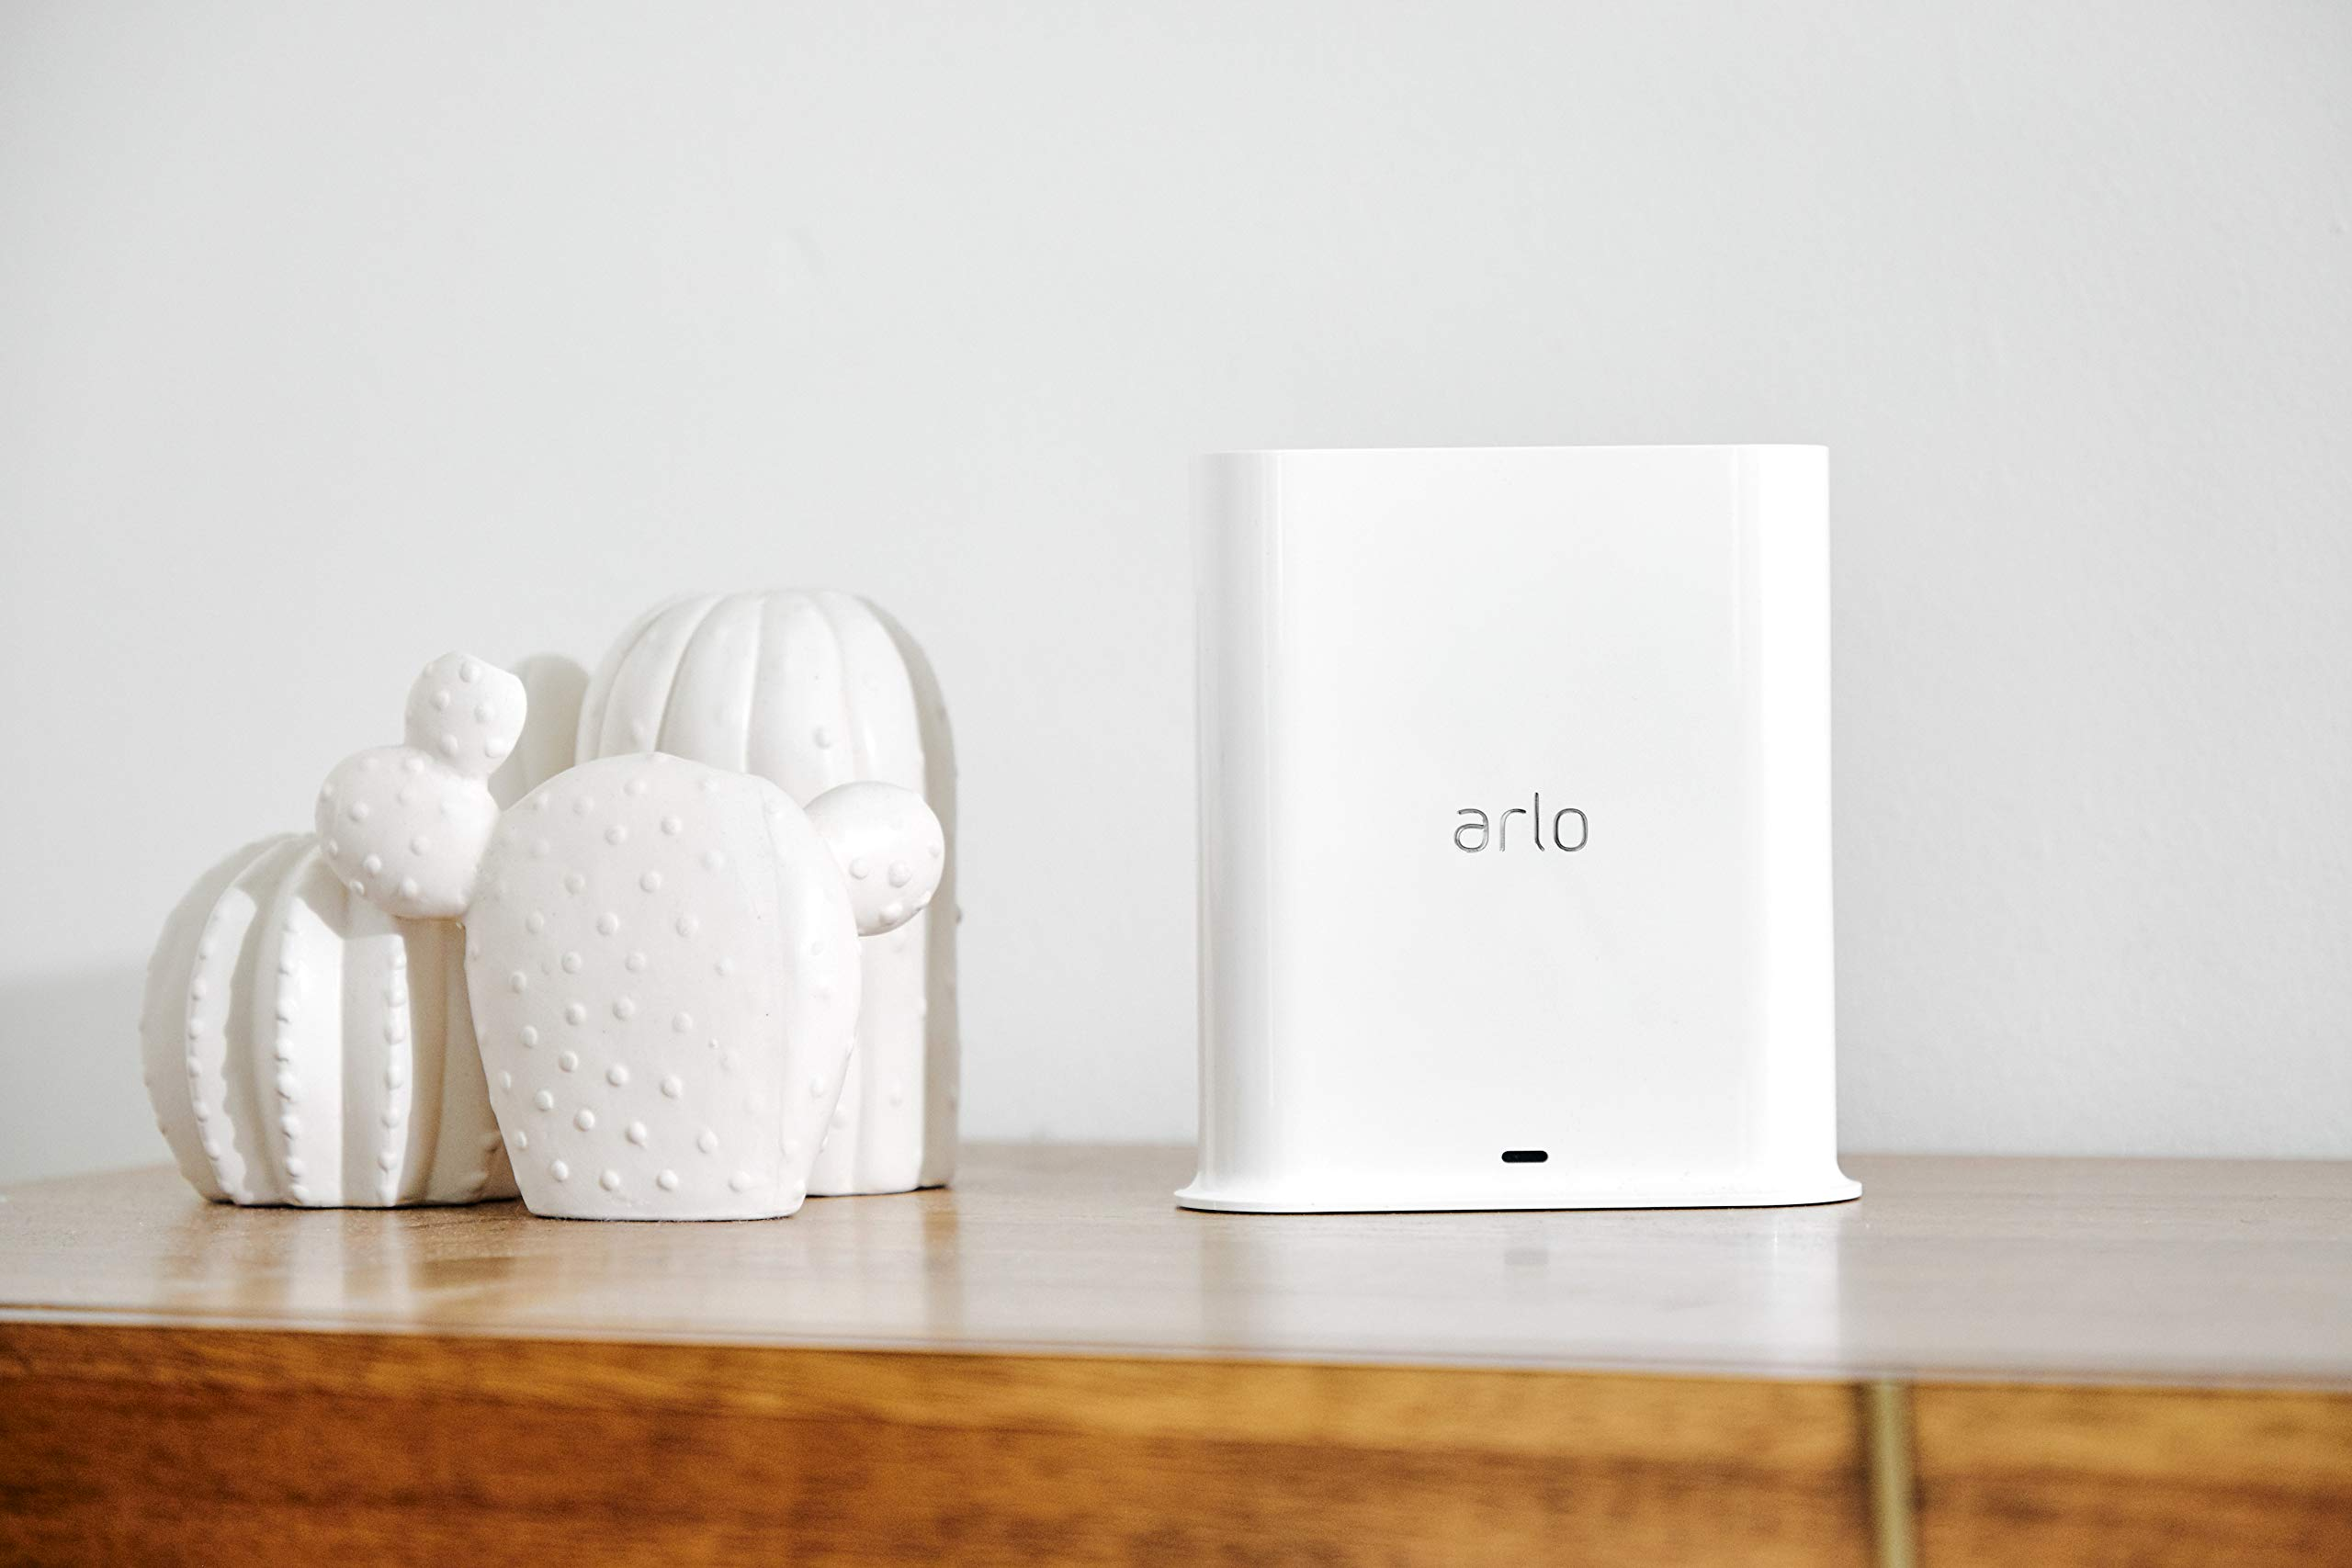 Arlo Accessory - Smart Hub | Build Our Your Own Arlo Kit | Compatible with Ultra, Pro, and Pro 2 Cameras | (VMB5000) by Arlo Technologies, Inc